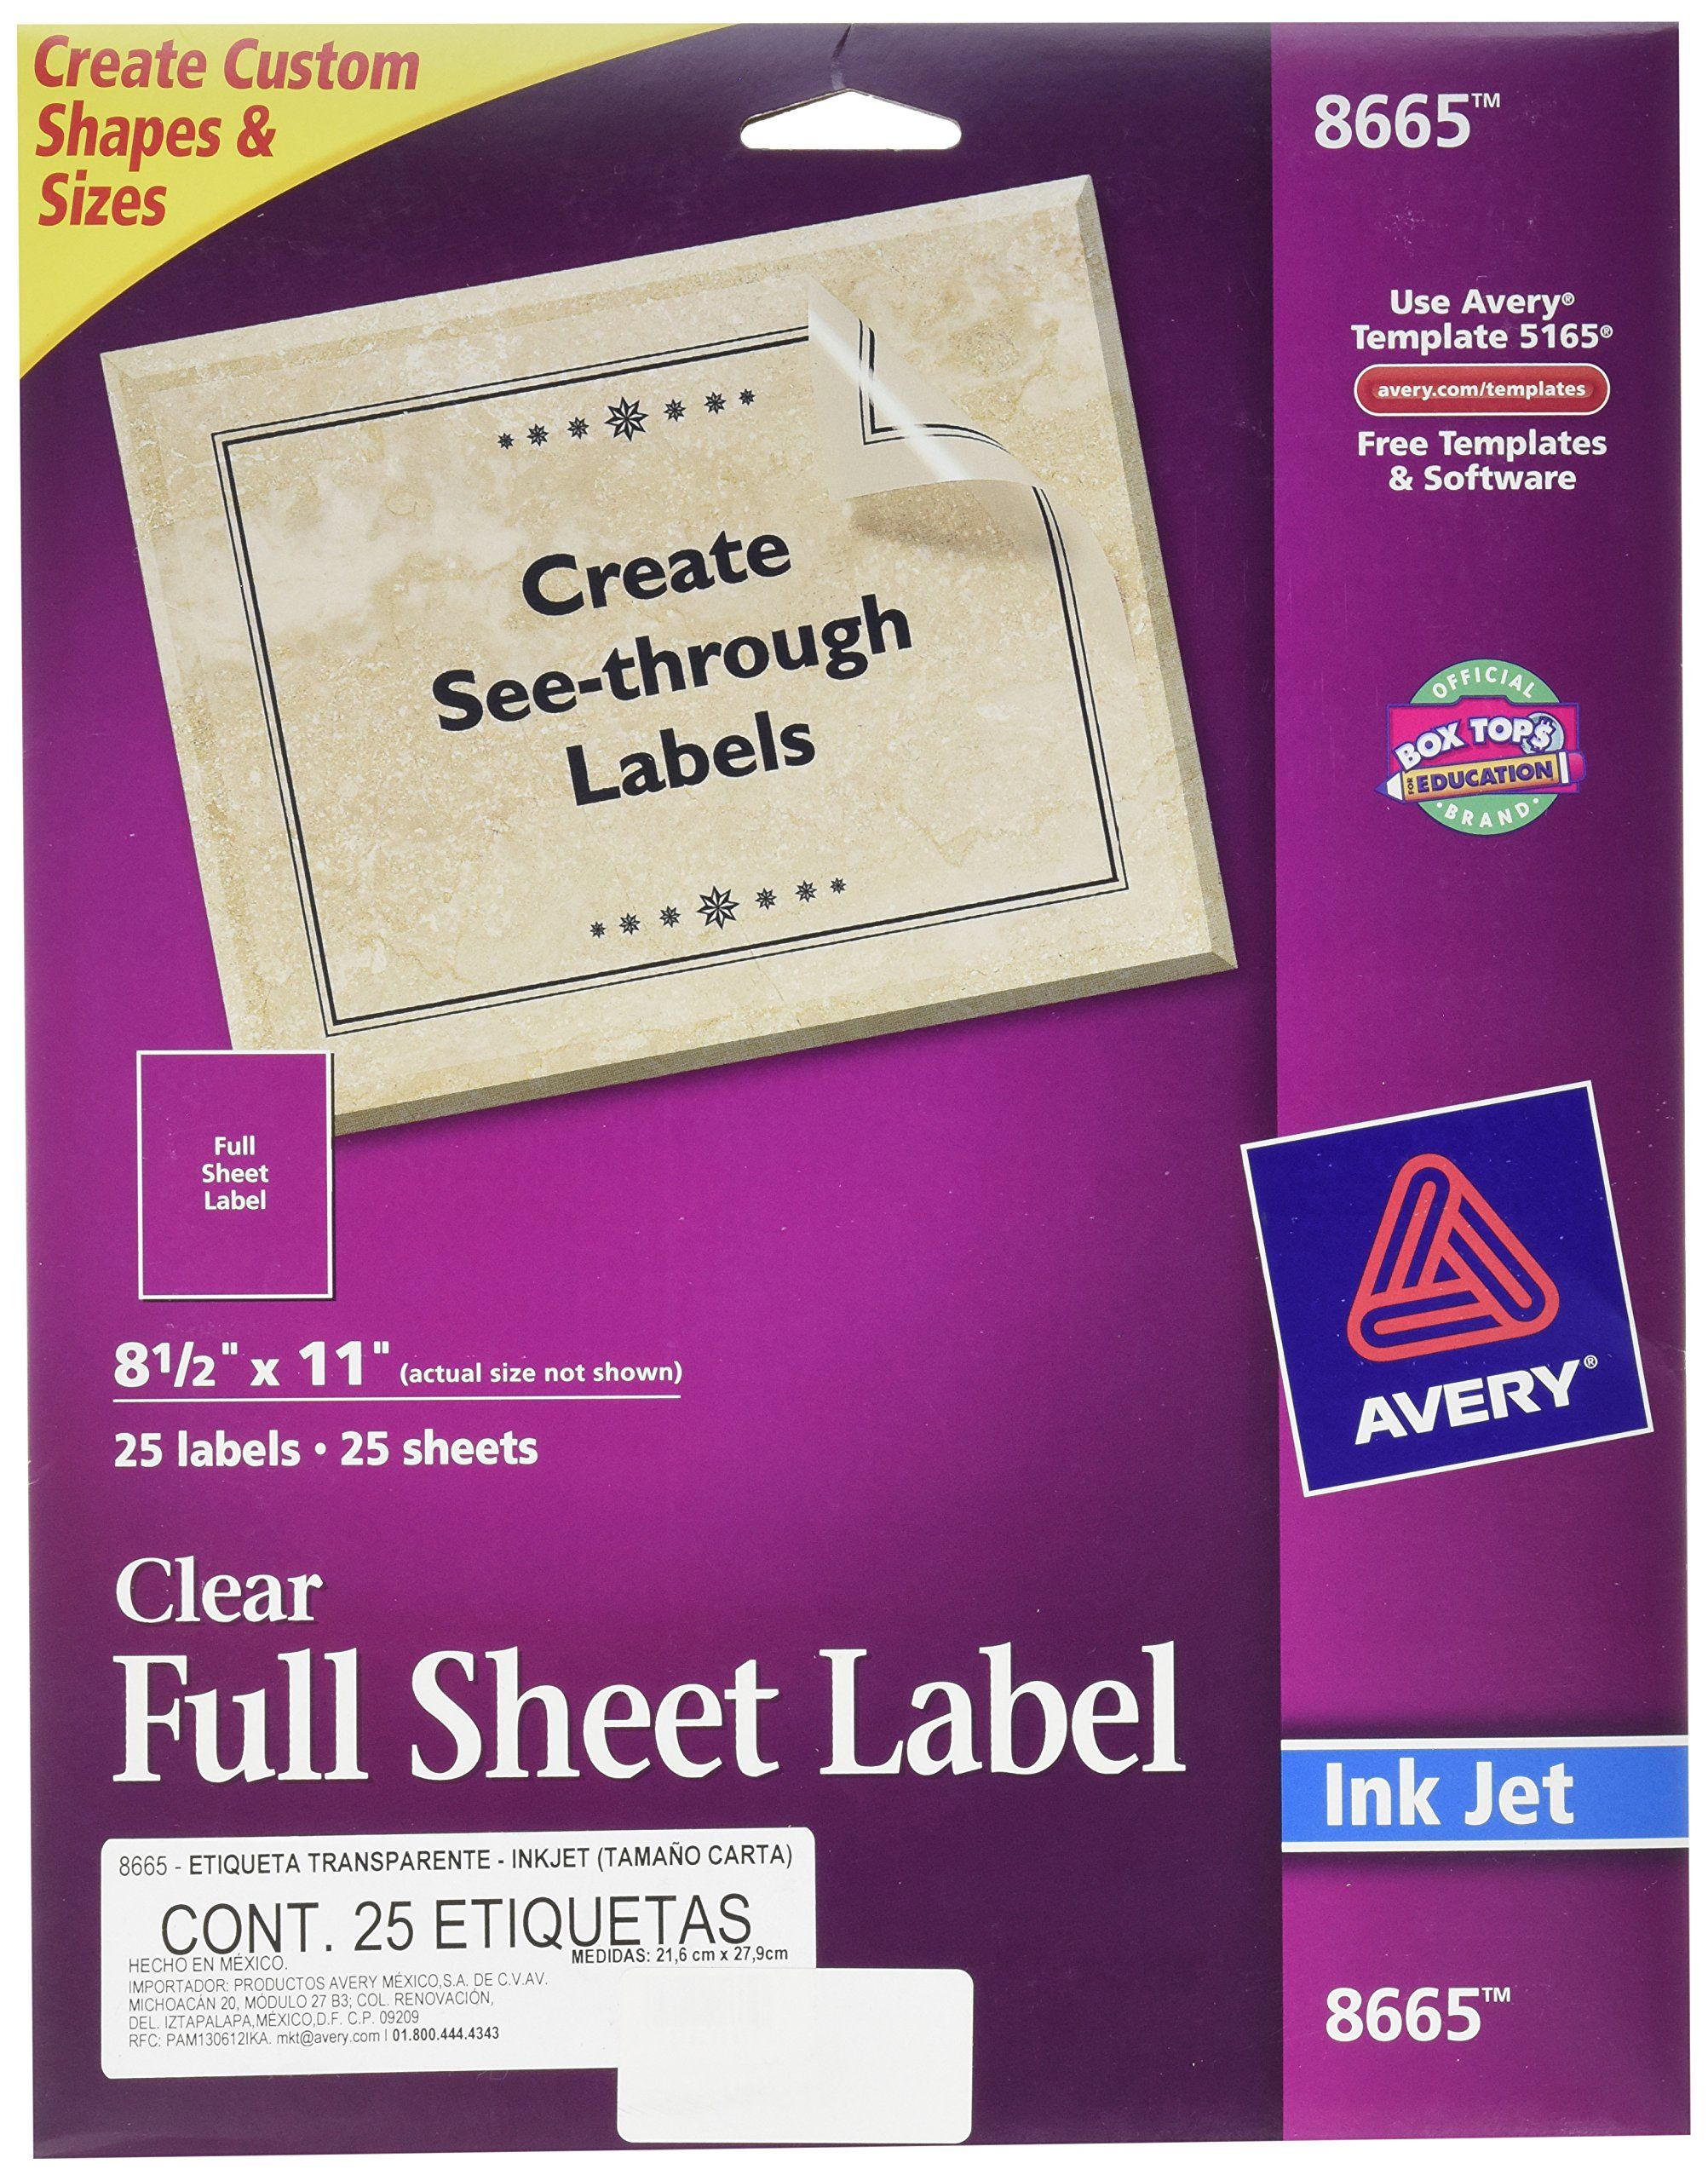 clear full sheet labels for laser printers mersn proforum co